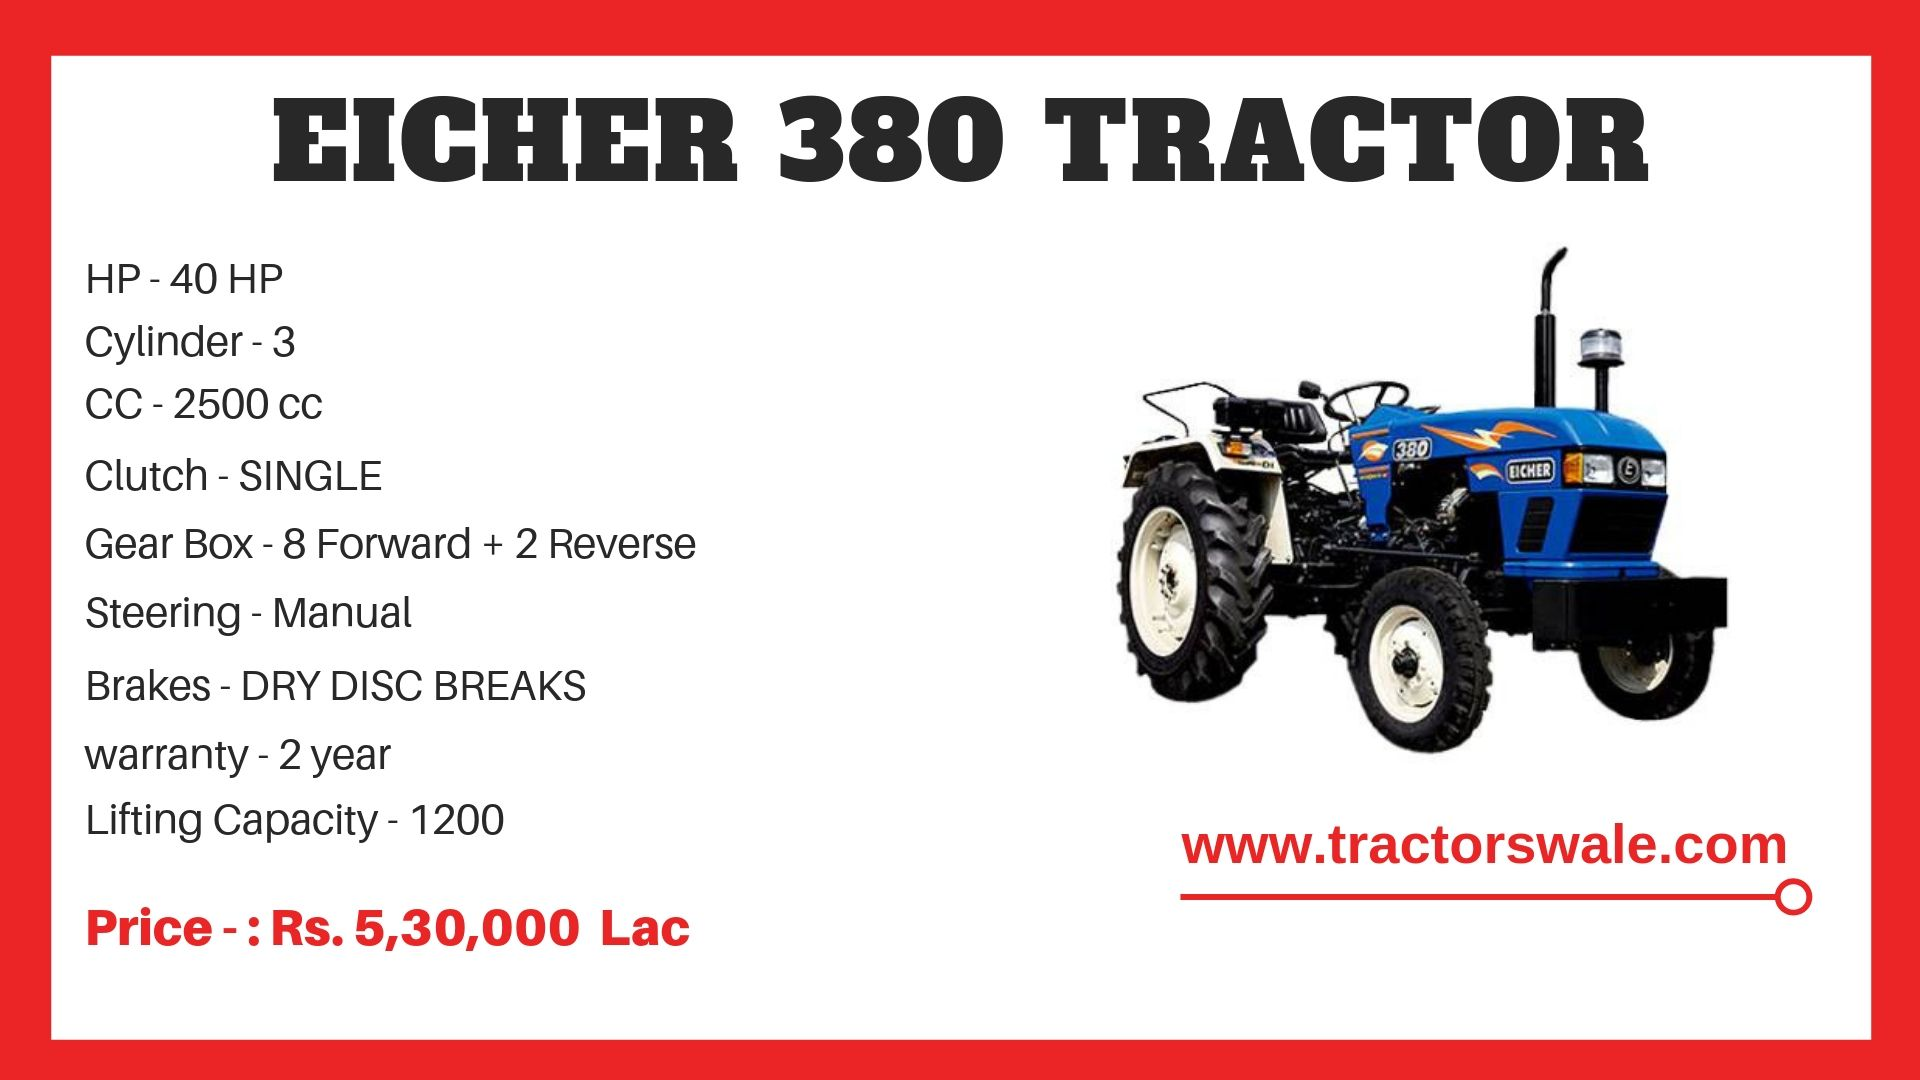 Eicher Tractor 380 Specifications